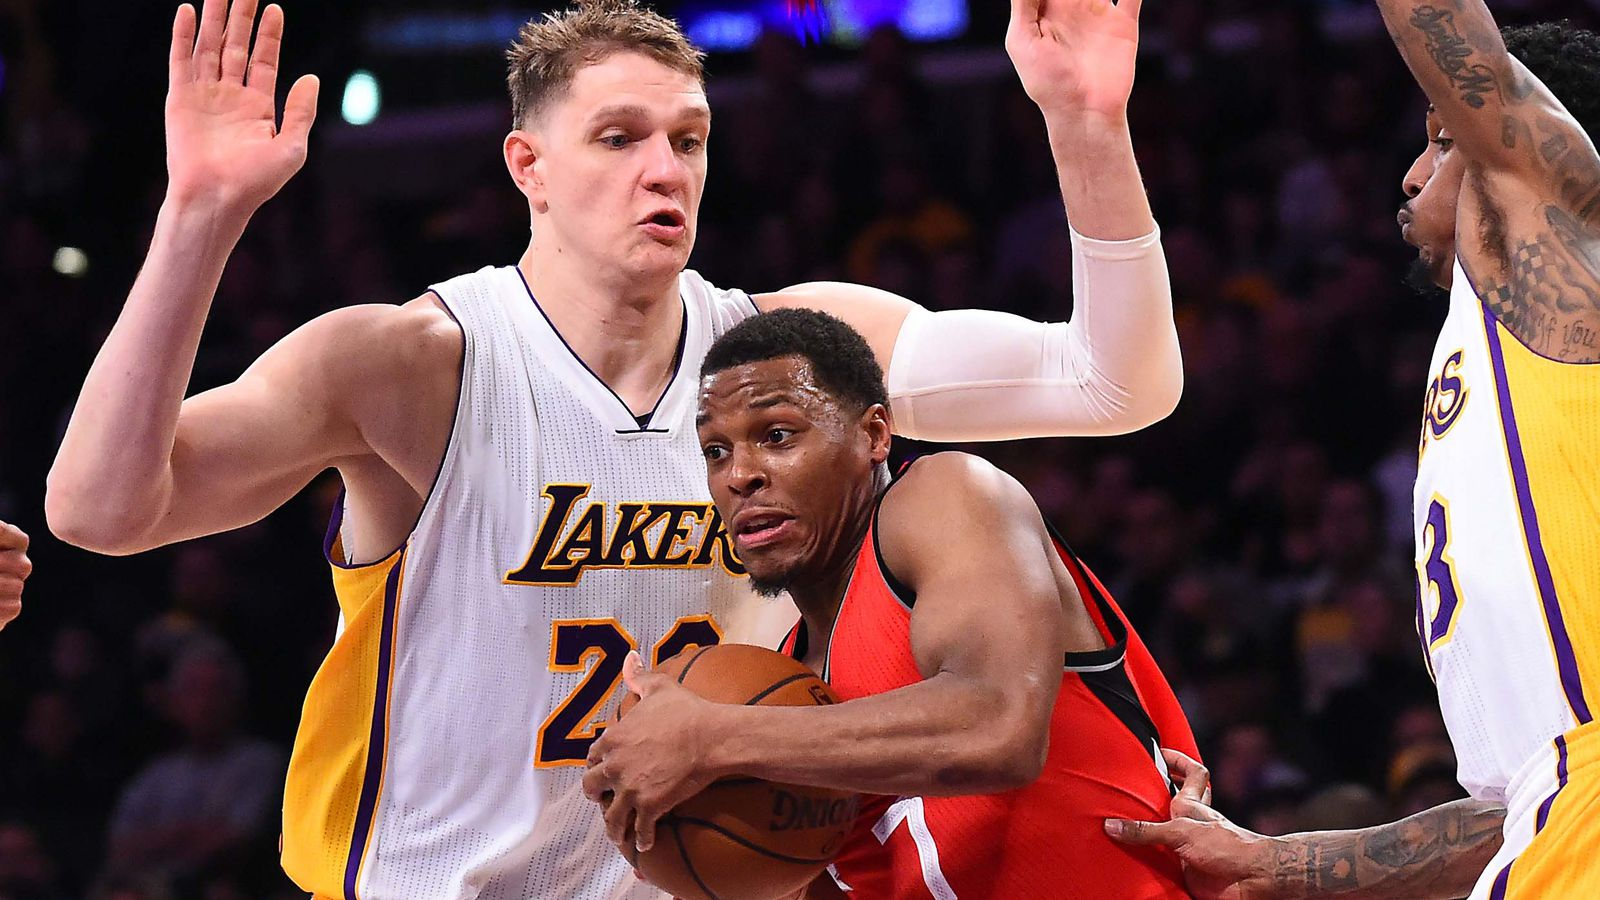 Lakers Vs Raptors Detail: Lakers Vs. Raptors Final Score: Kyle Lowry Goes Off